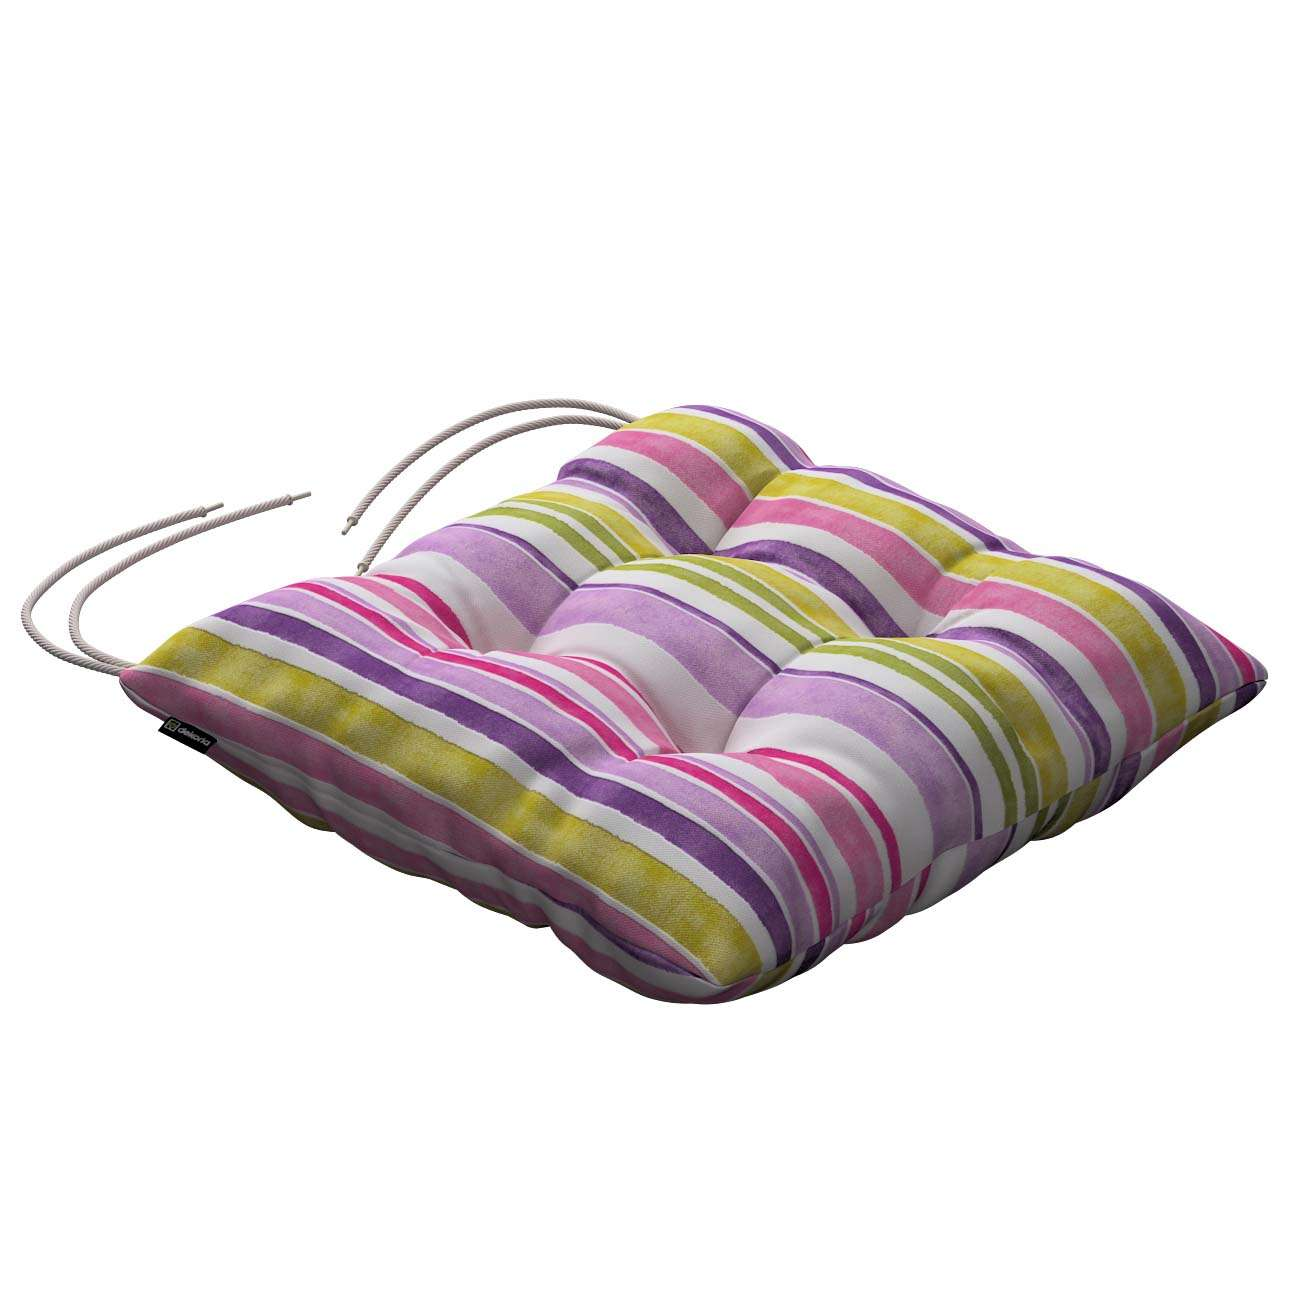 Jack seat pad with ties 40 × 40 × 8 cm (16 × 16 × 3 inch) in collection Monet, fabric: 140-01